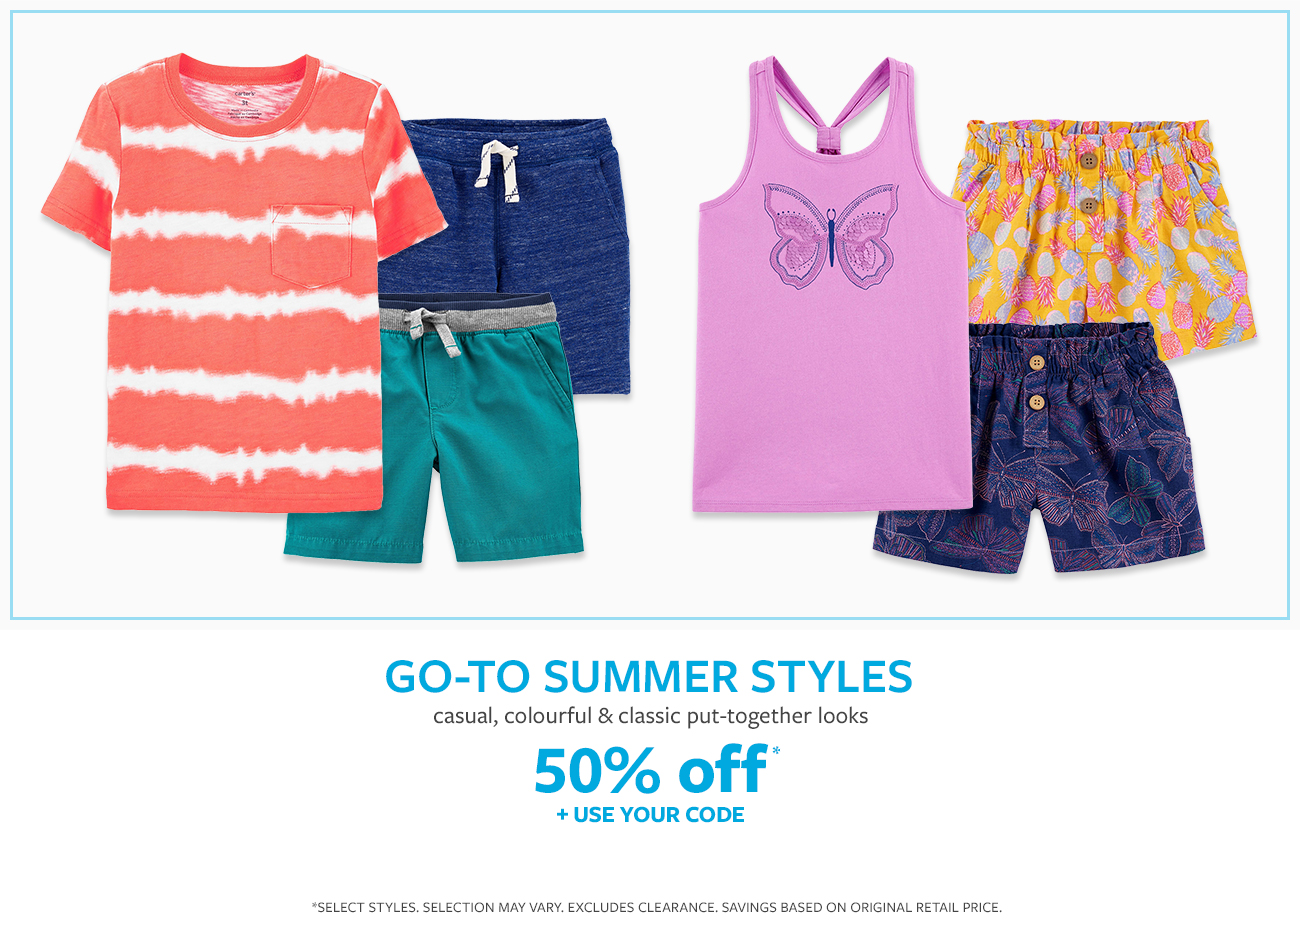 Go to summer styles | casual, colorful & classic put-together looks | 50% off + use your code